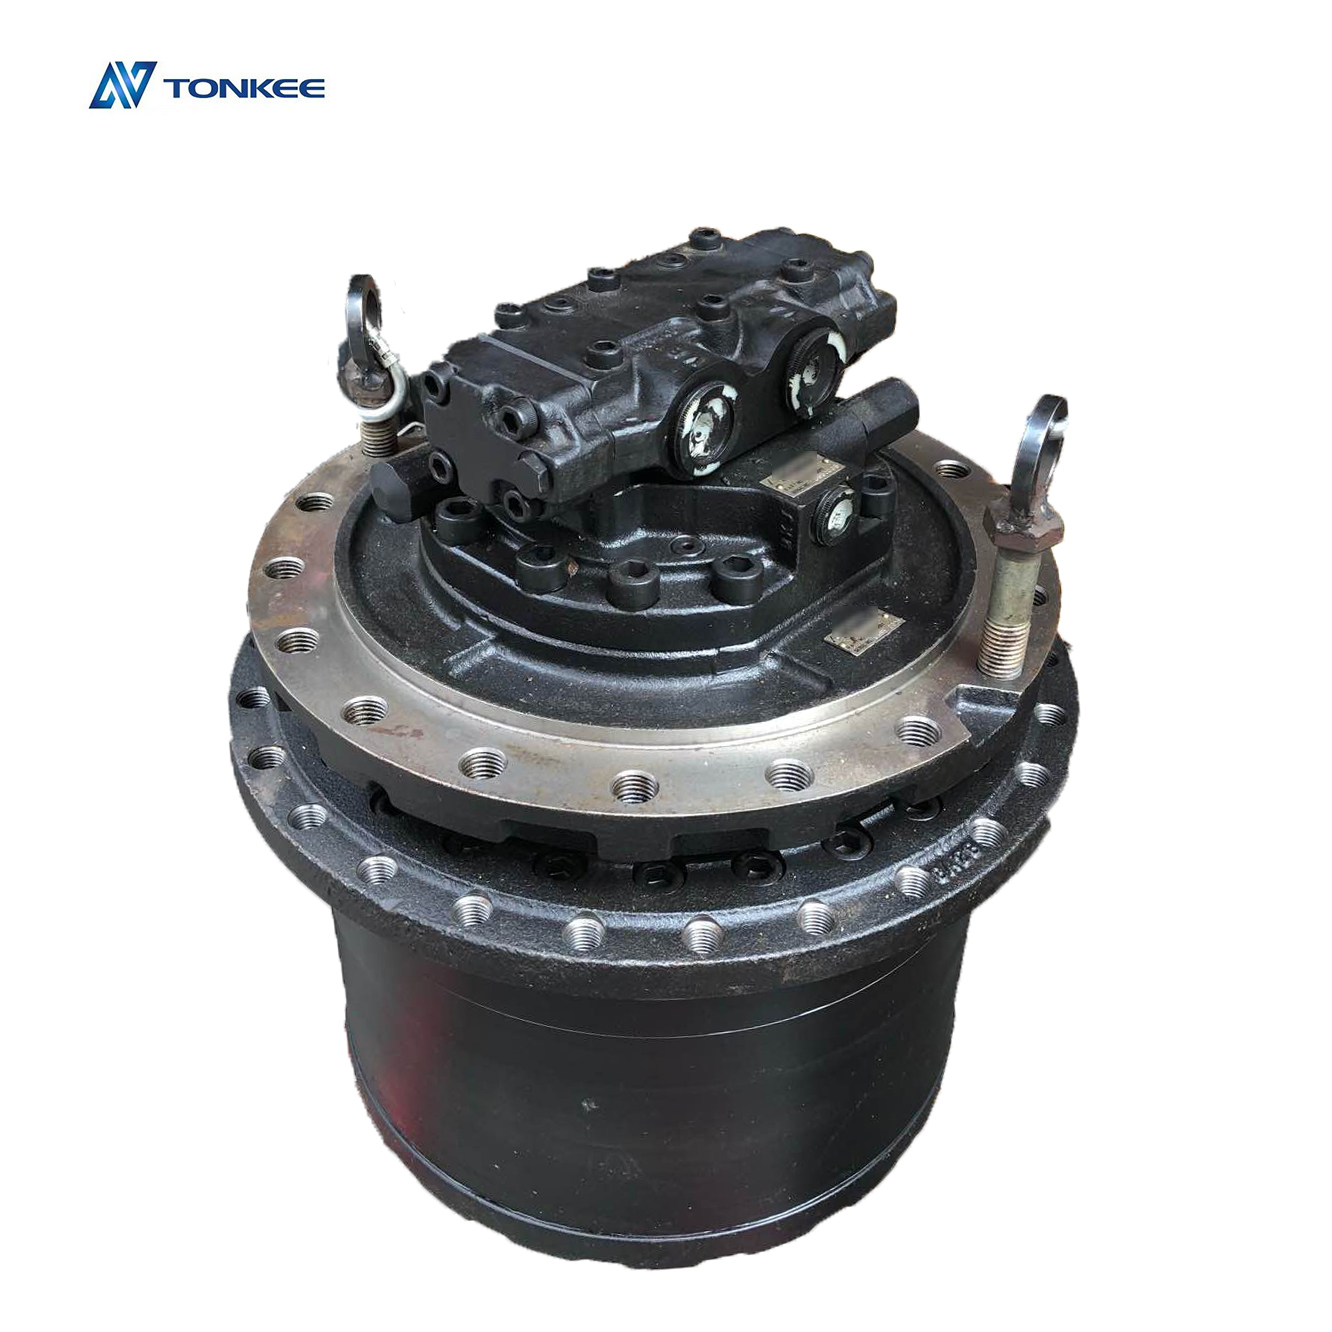 NEW 31N8-40011 final drive R305LC-7 travel motor assy R305-7 travel motor assy for HYUNDAI excavation